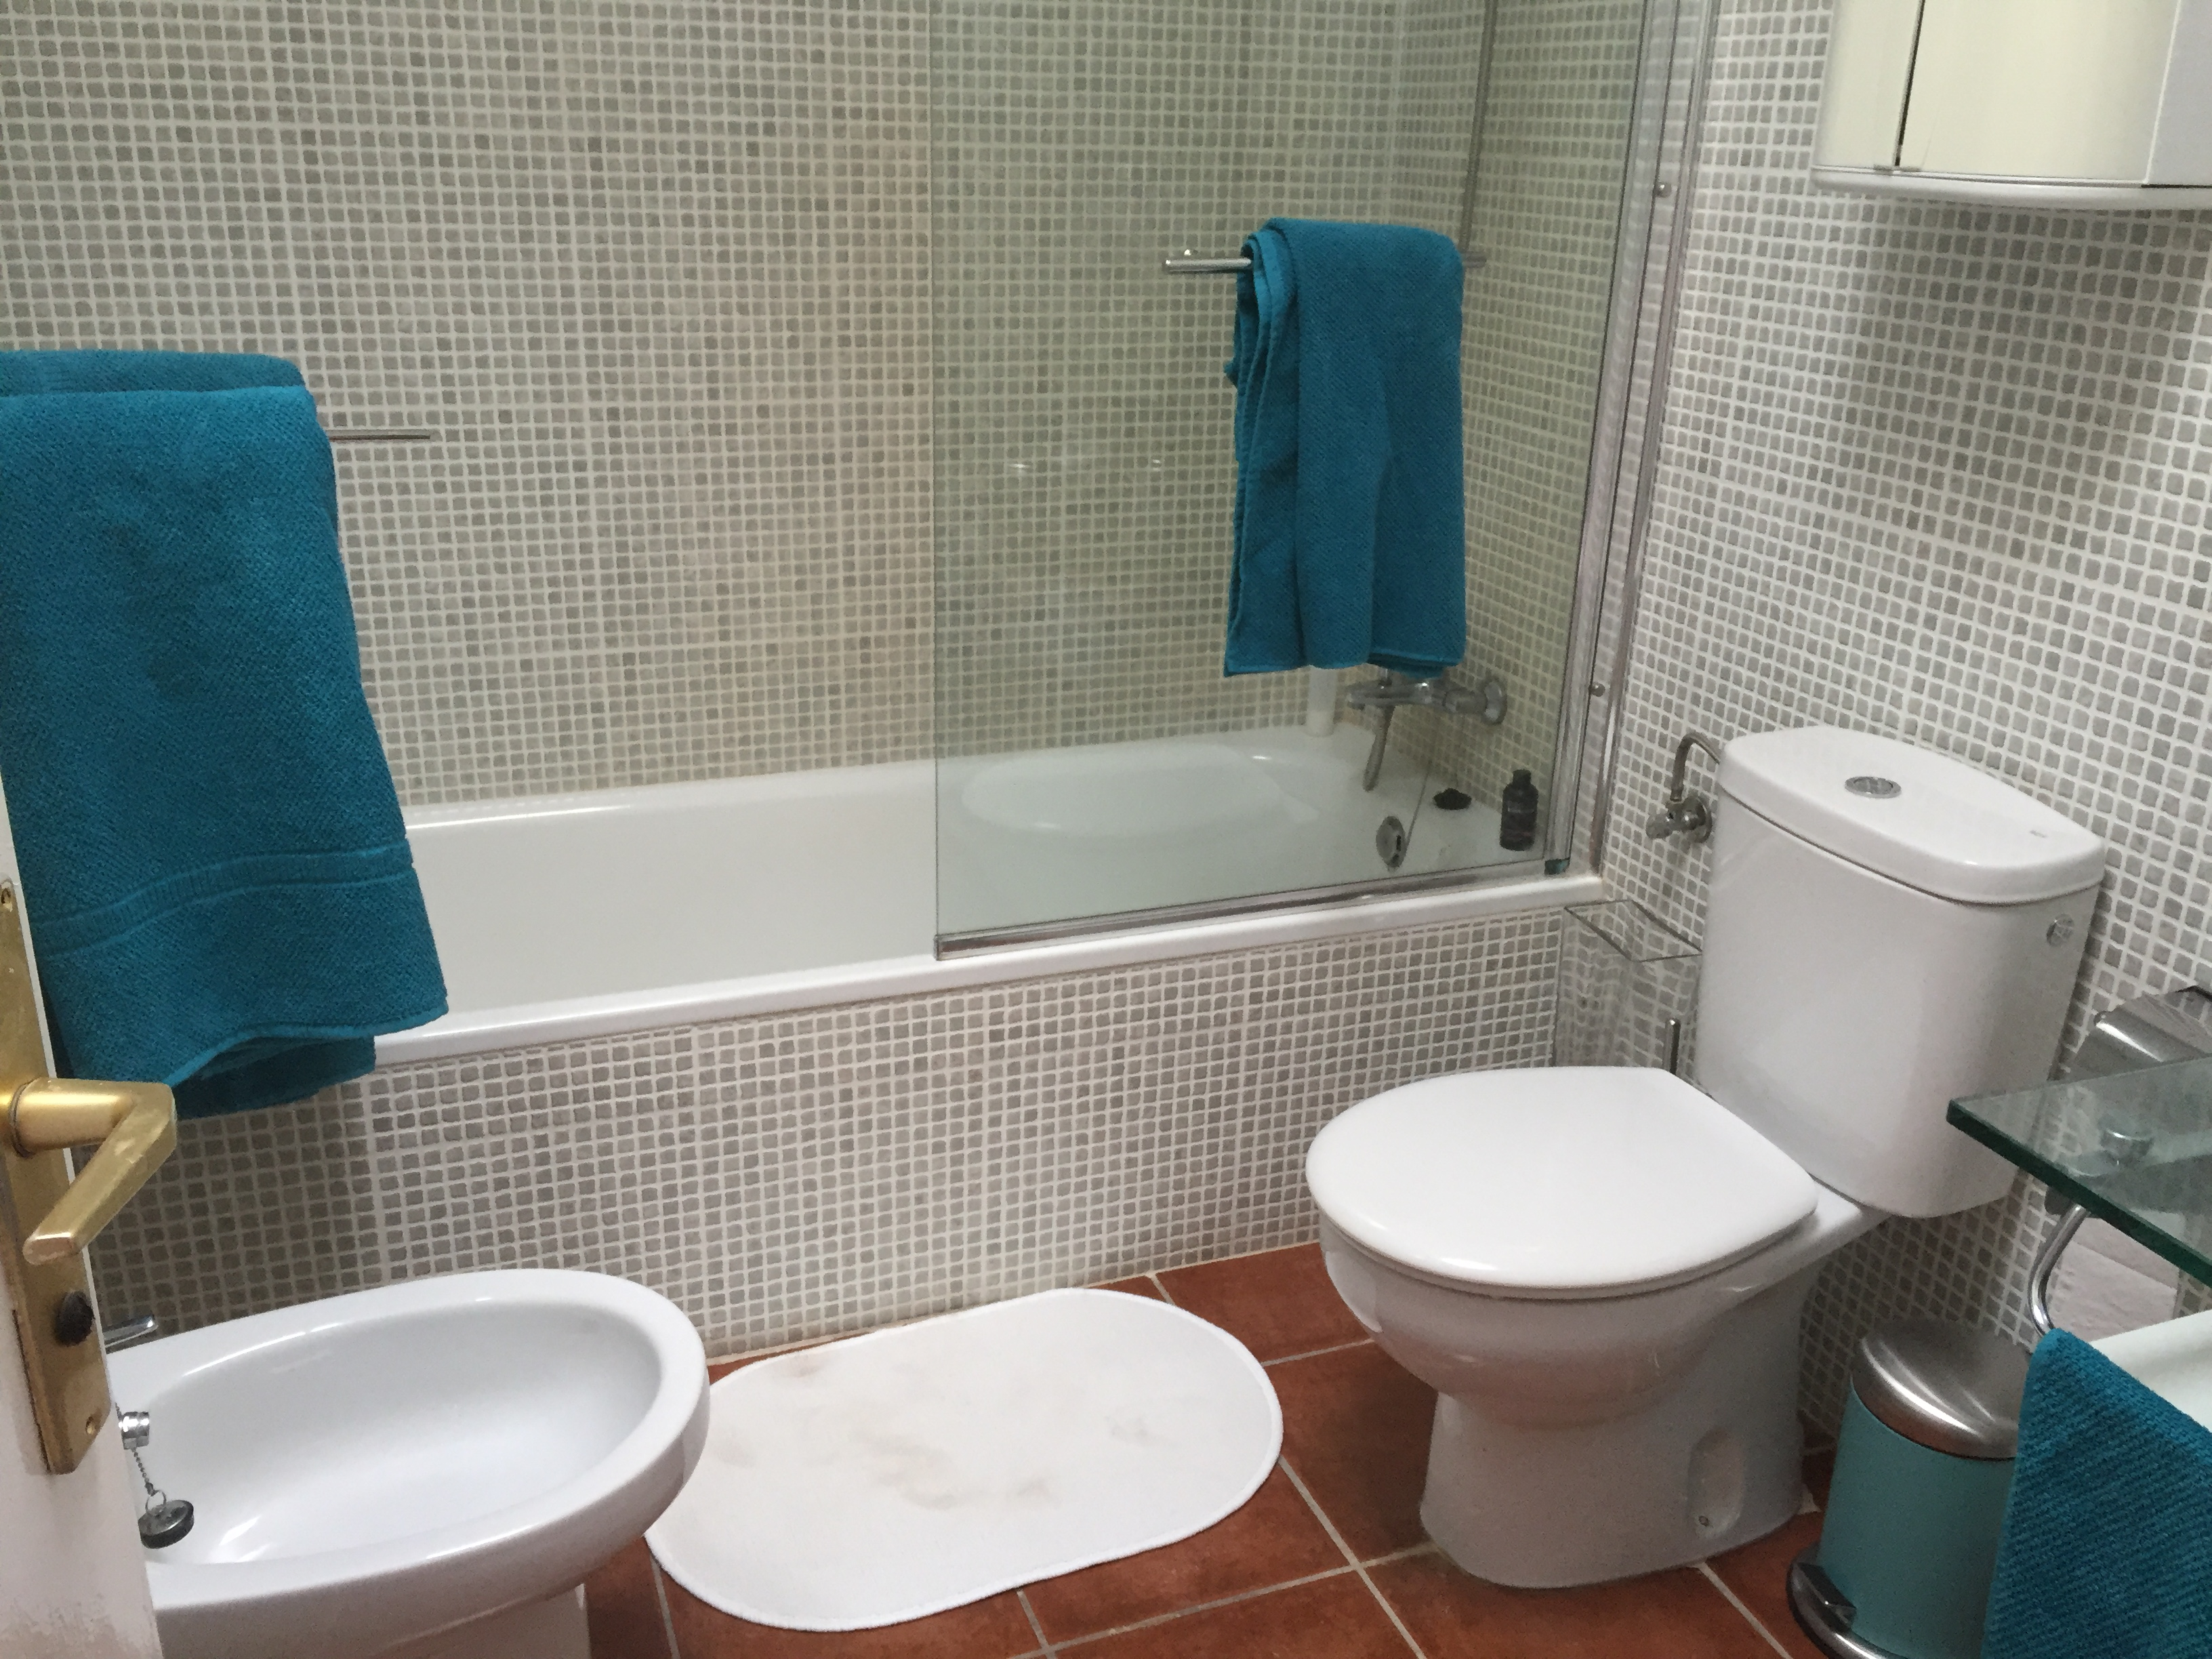 Bathroom tiler - Recommended Tradesmen and Companies in Tias - Tias ...